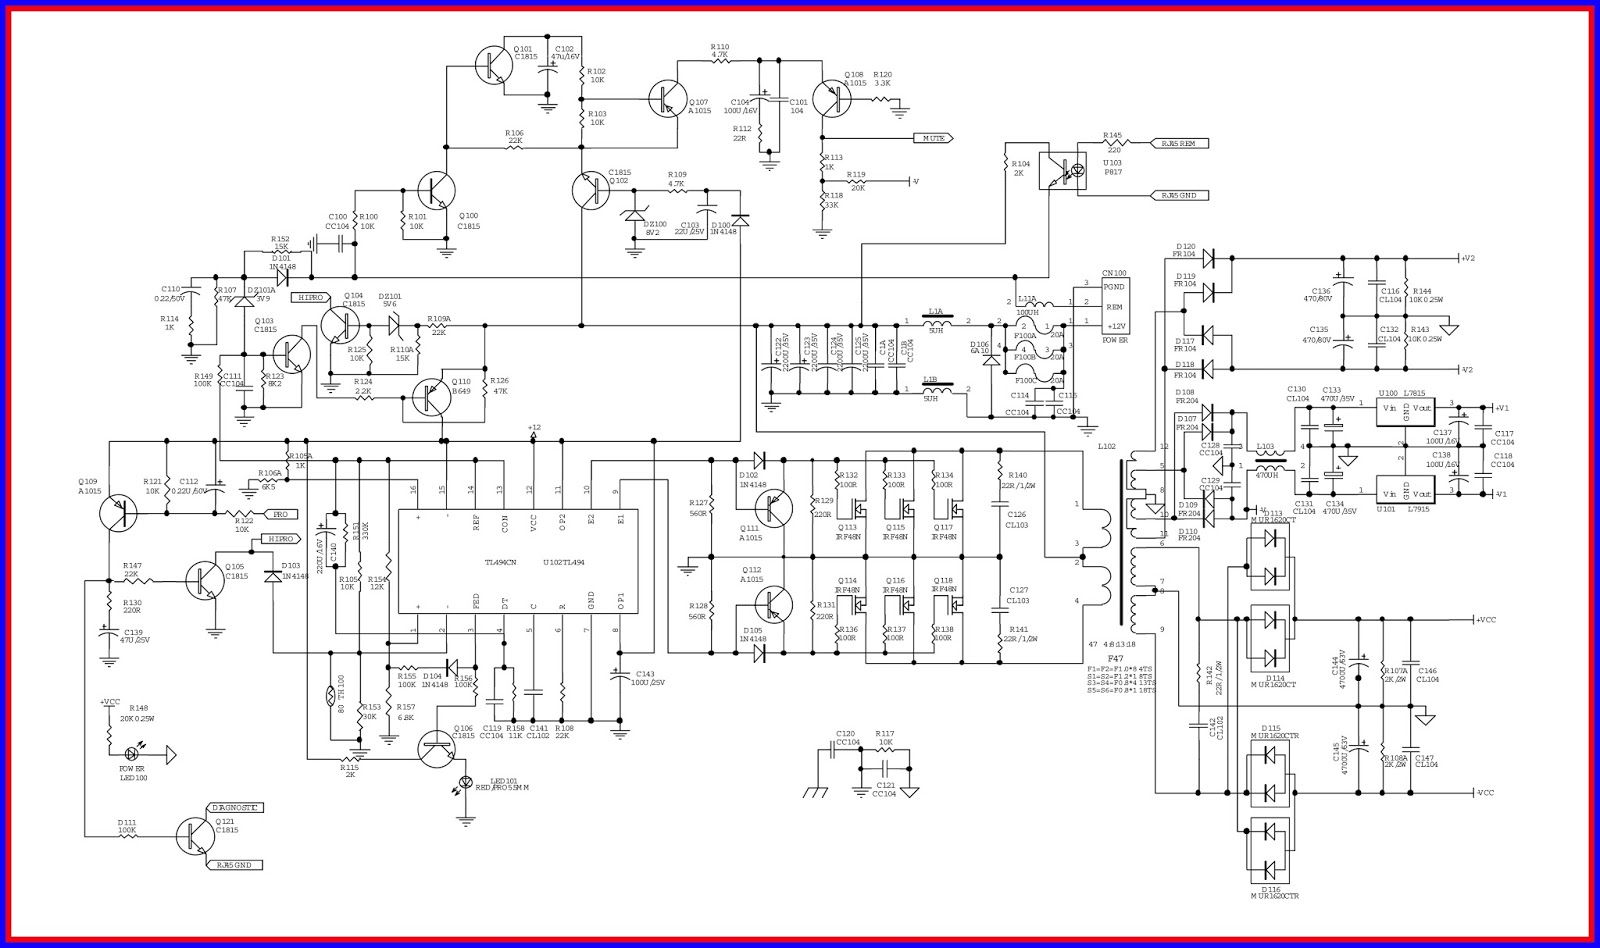 Car Amplifier Scematic Wiring Diagram Libraries Audio Circuit Received By Email Lm2896 Electronic Equipment Repair Centre Infinity 1300a